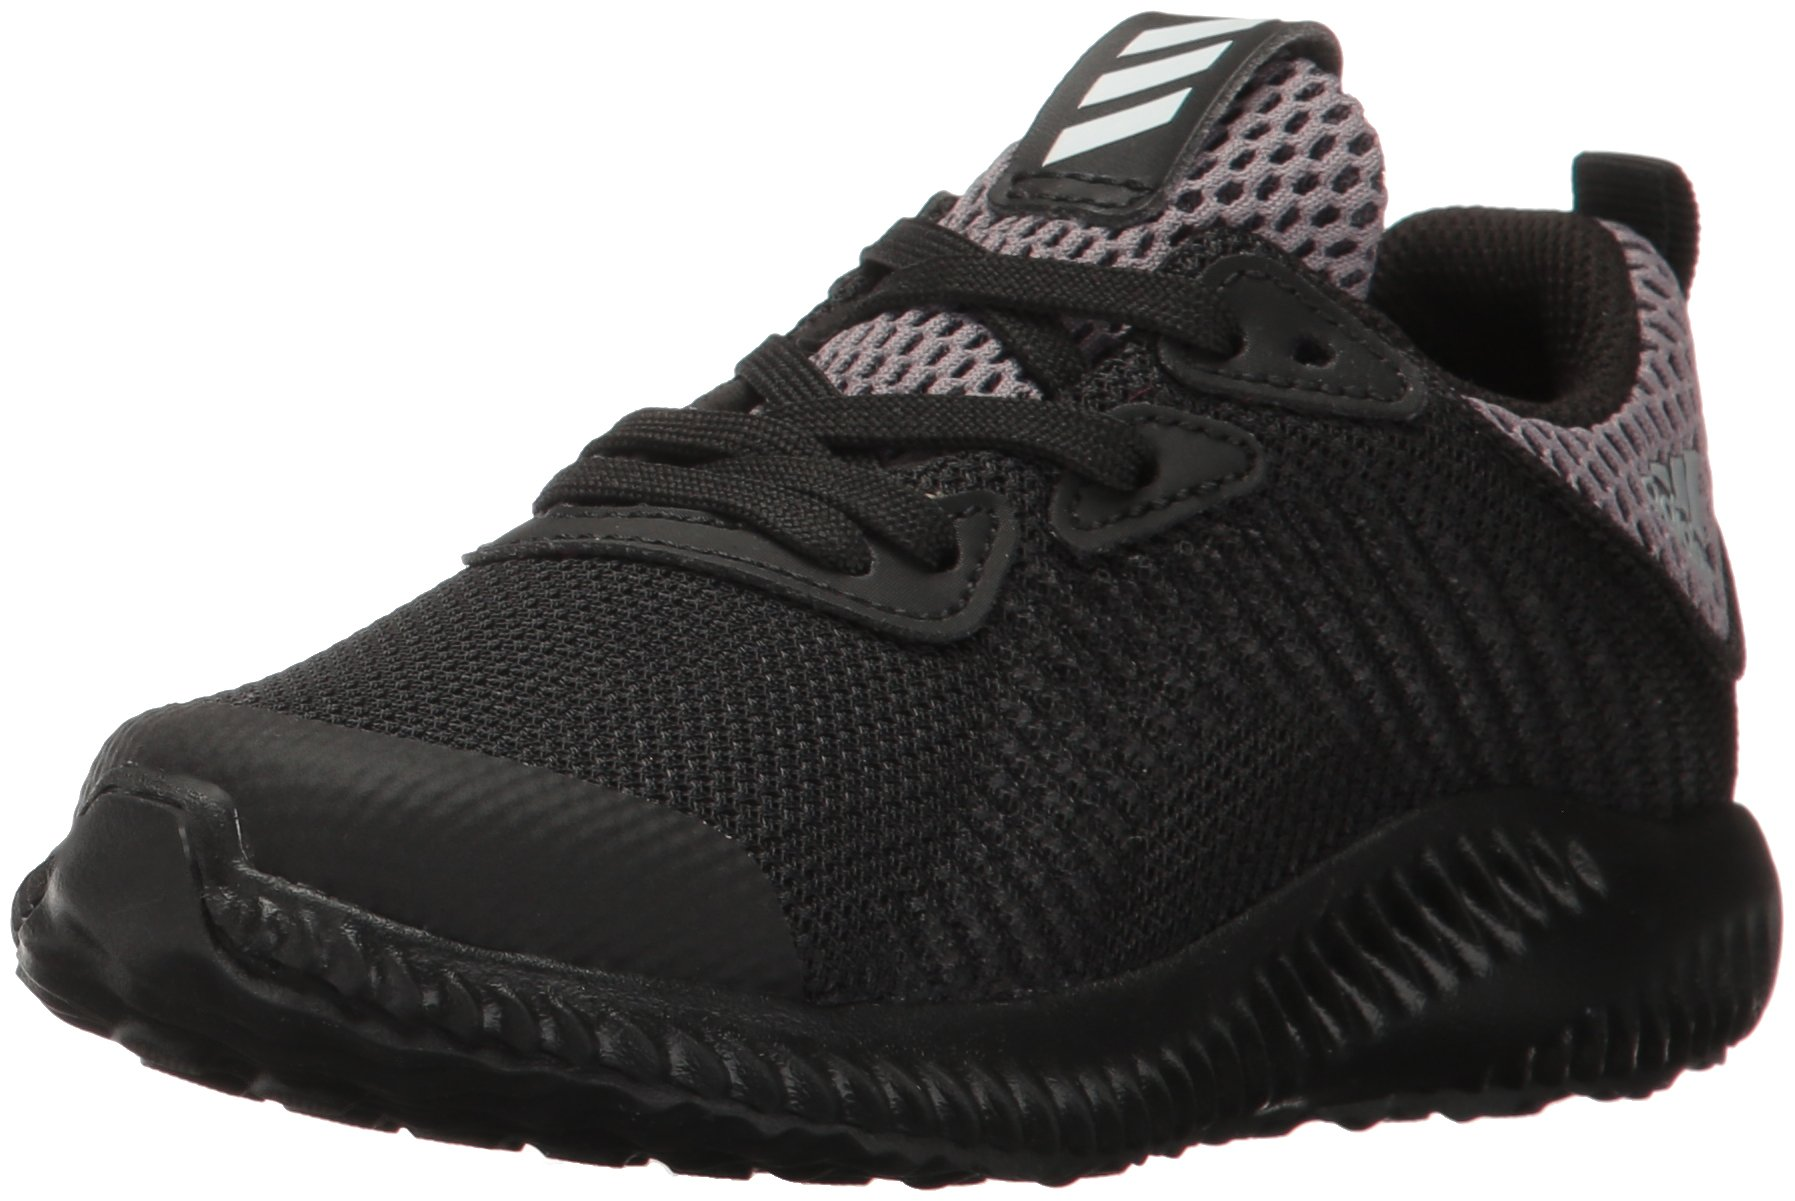 adidas Kids' Alphabounce Running Shoe, Black/White/Utility Black, 11 Medium US Little Kid